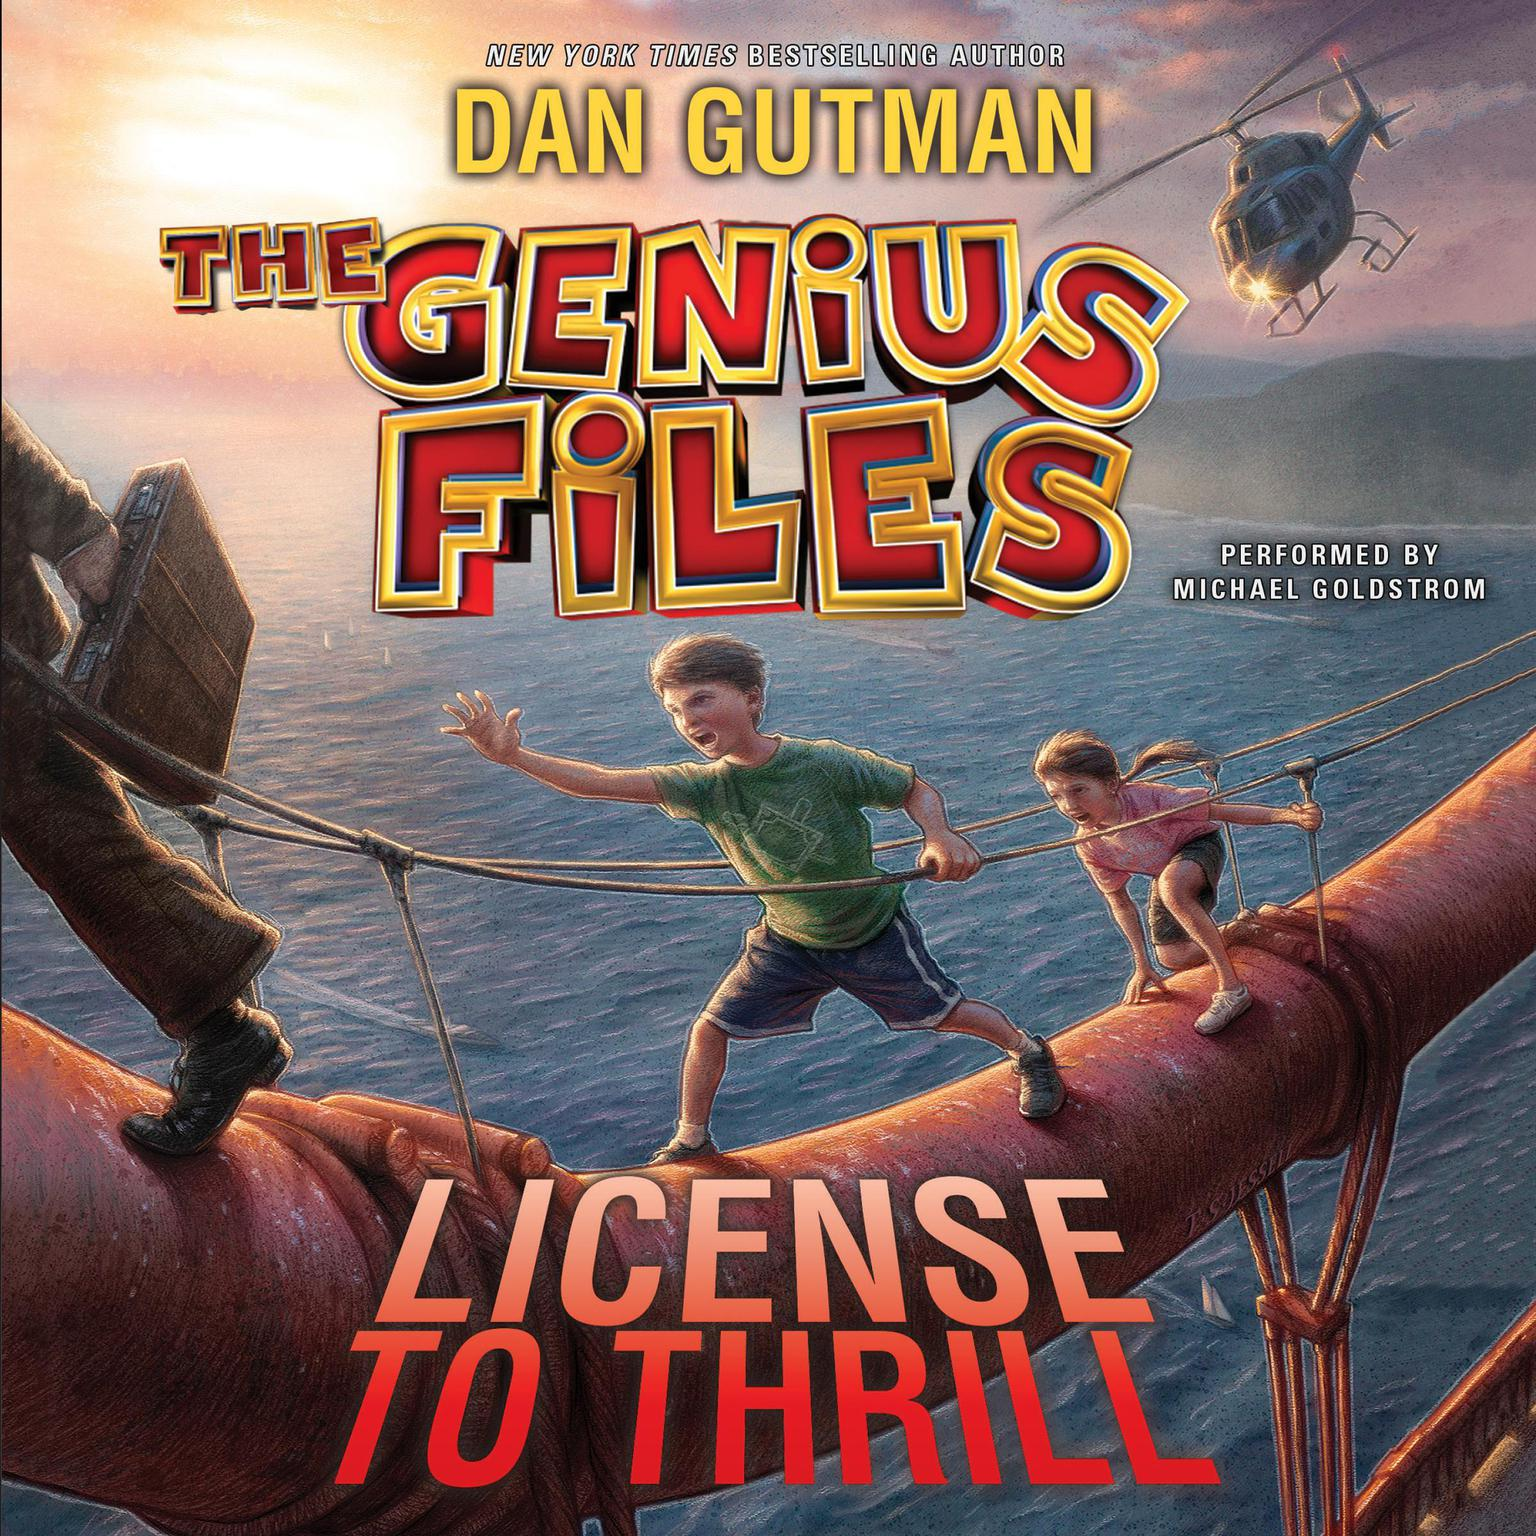 Printable License to Thrill Audiobook Cover Art